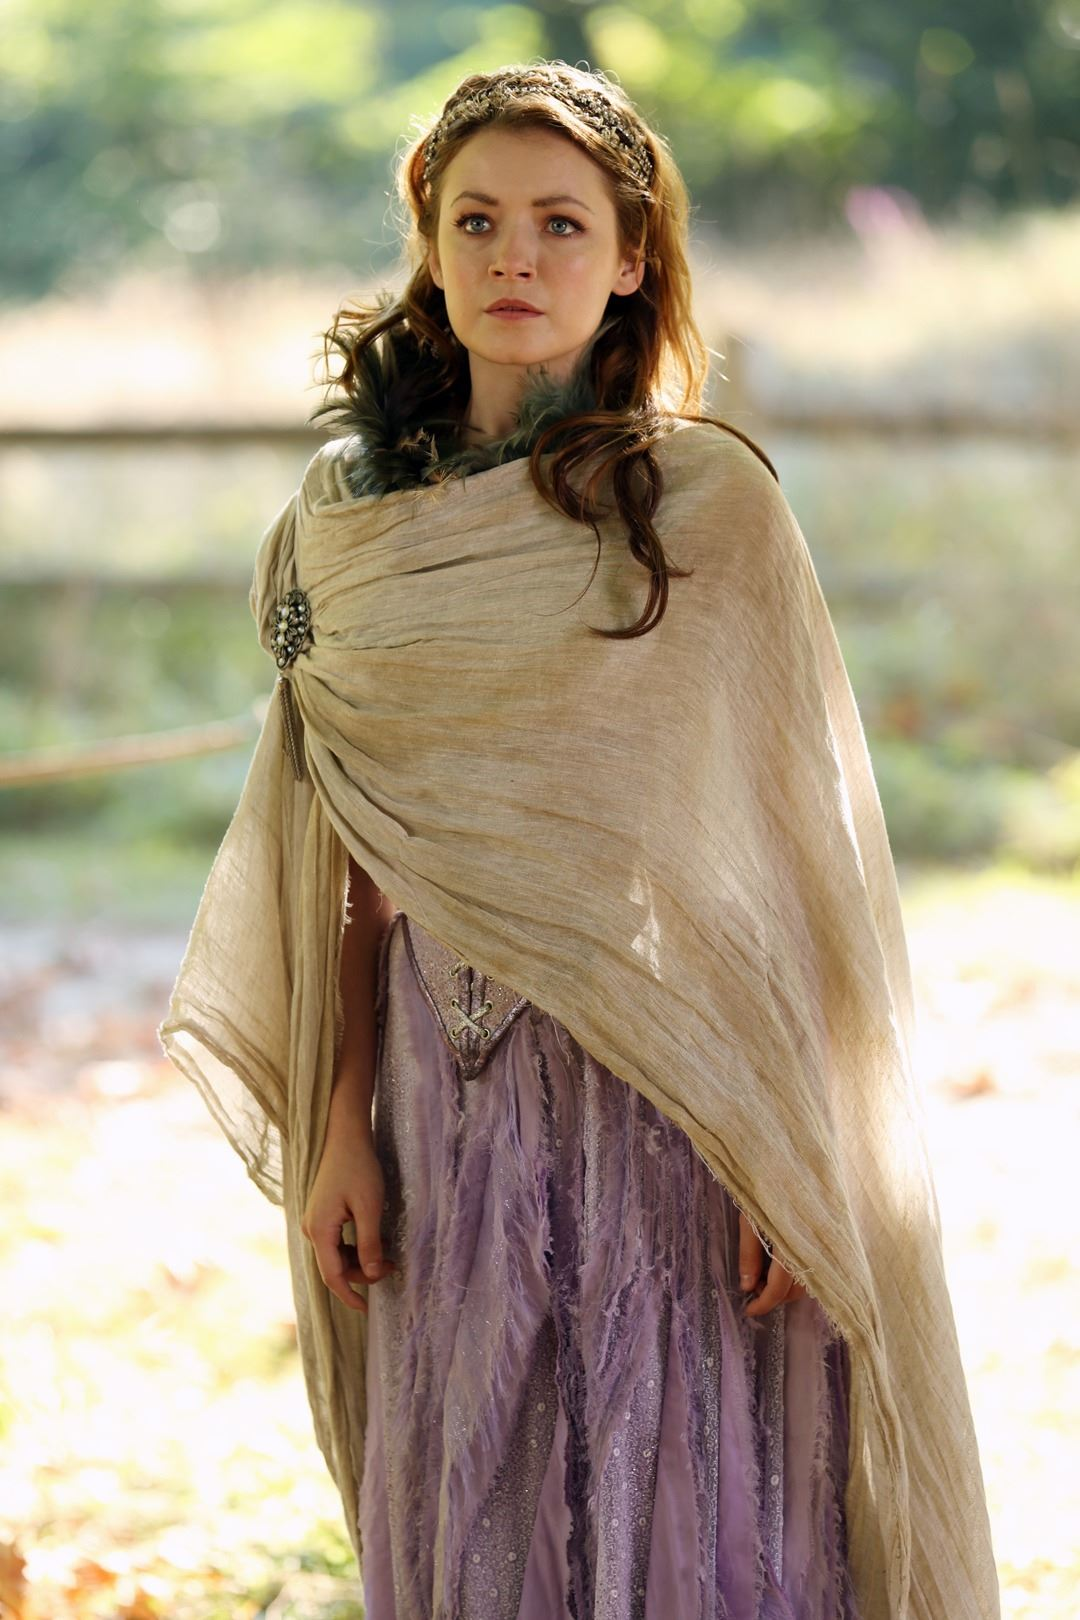 """Princess Aurora"" gown, cloak, and crown ensemble from Once Upon a Time  Season 2, Episode 5"